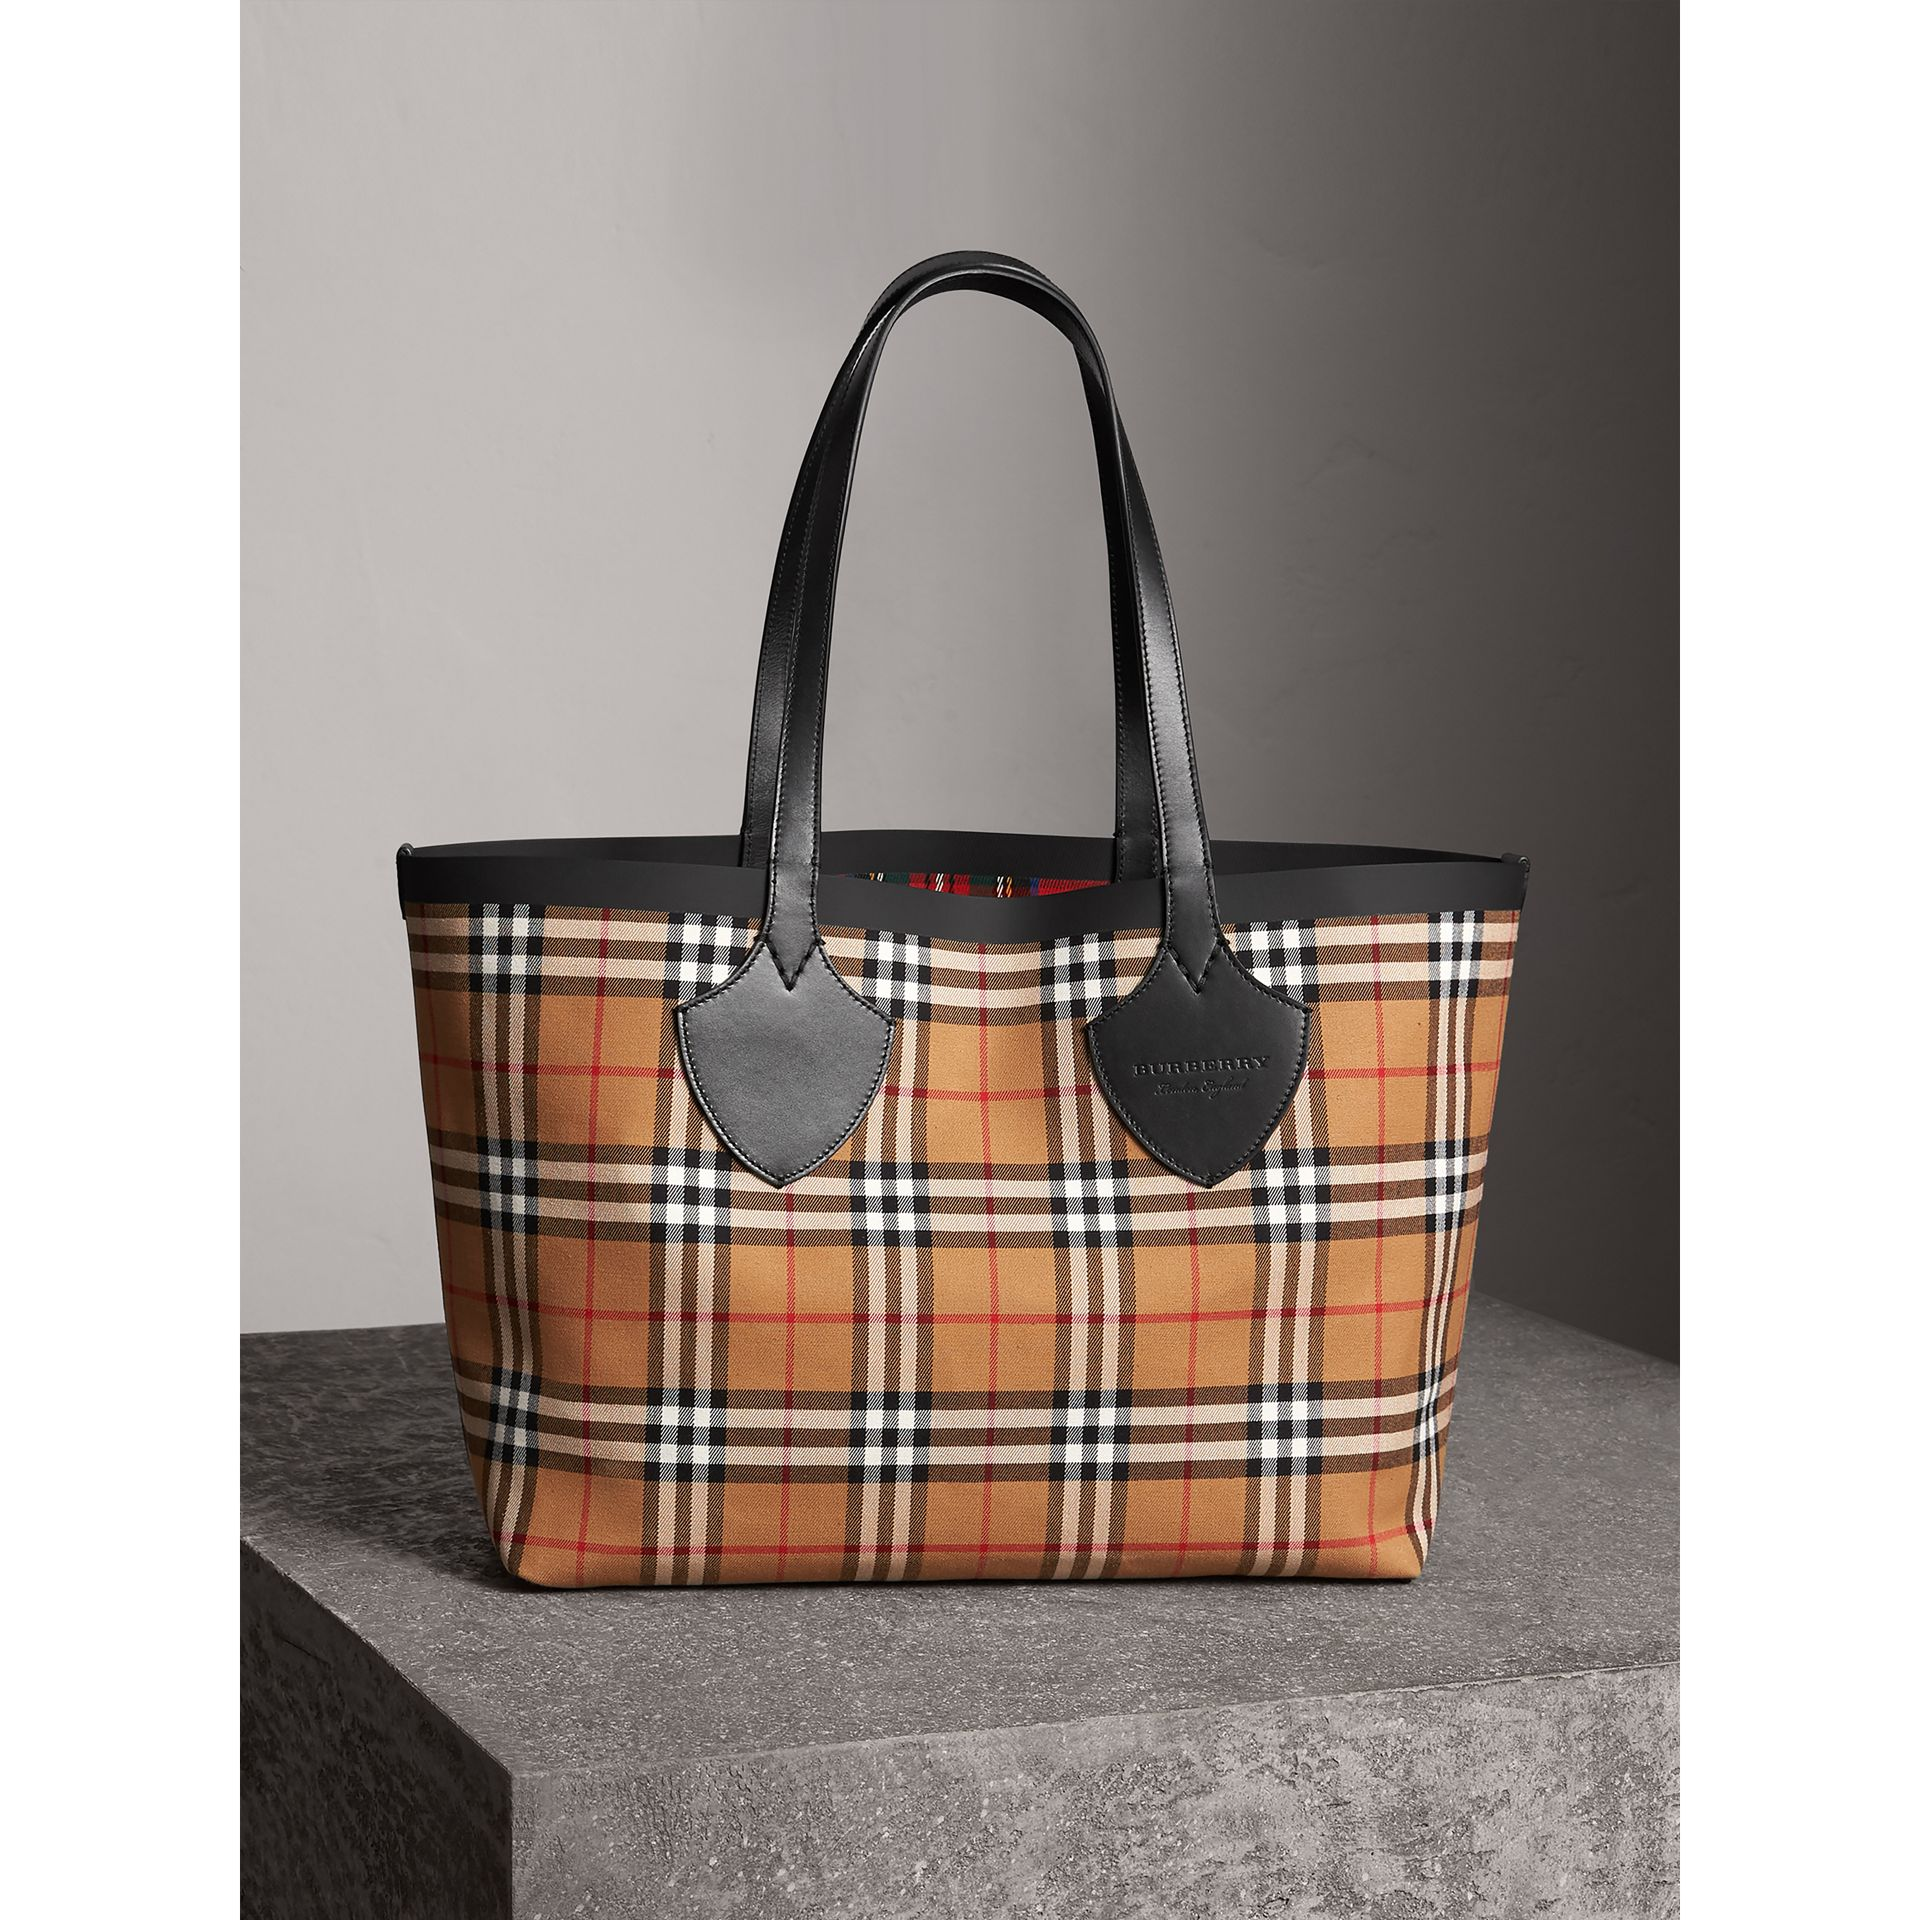 Sac tote The Giant moyen en Vintage check (Jaune Antique/rouge Vif) | Burberry - photo de la galerie 6